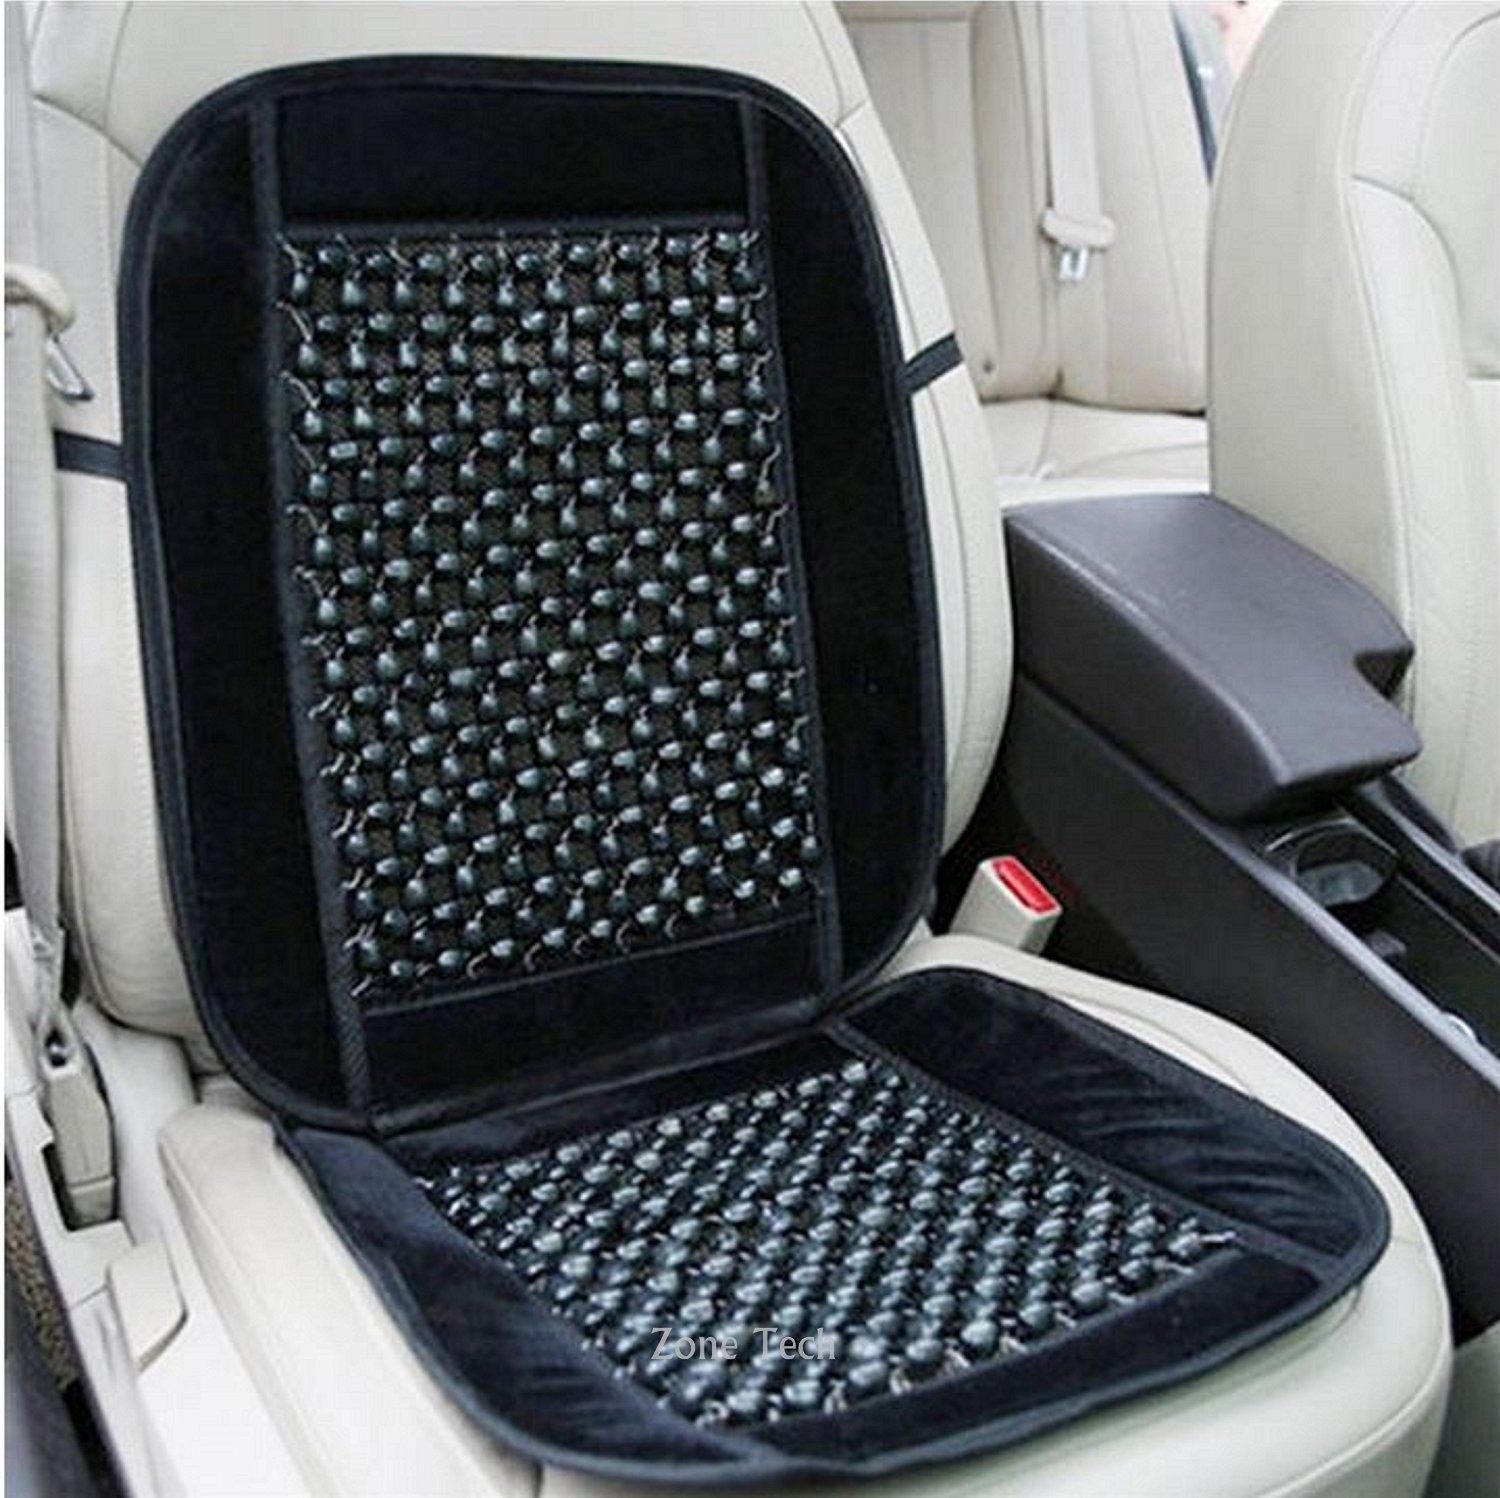 cover chair seat car cane suppliers in mumbai auto accessories headlight bulbs gifts black wood